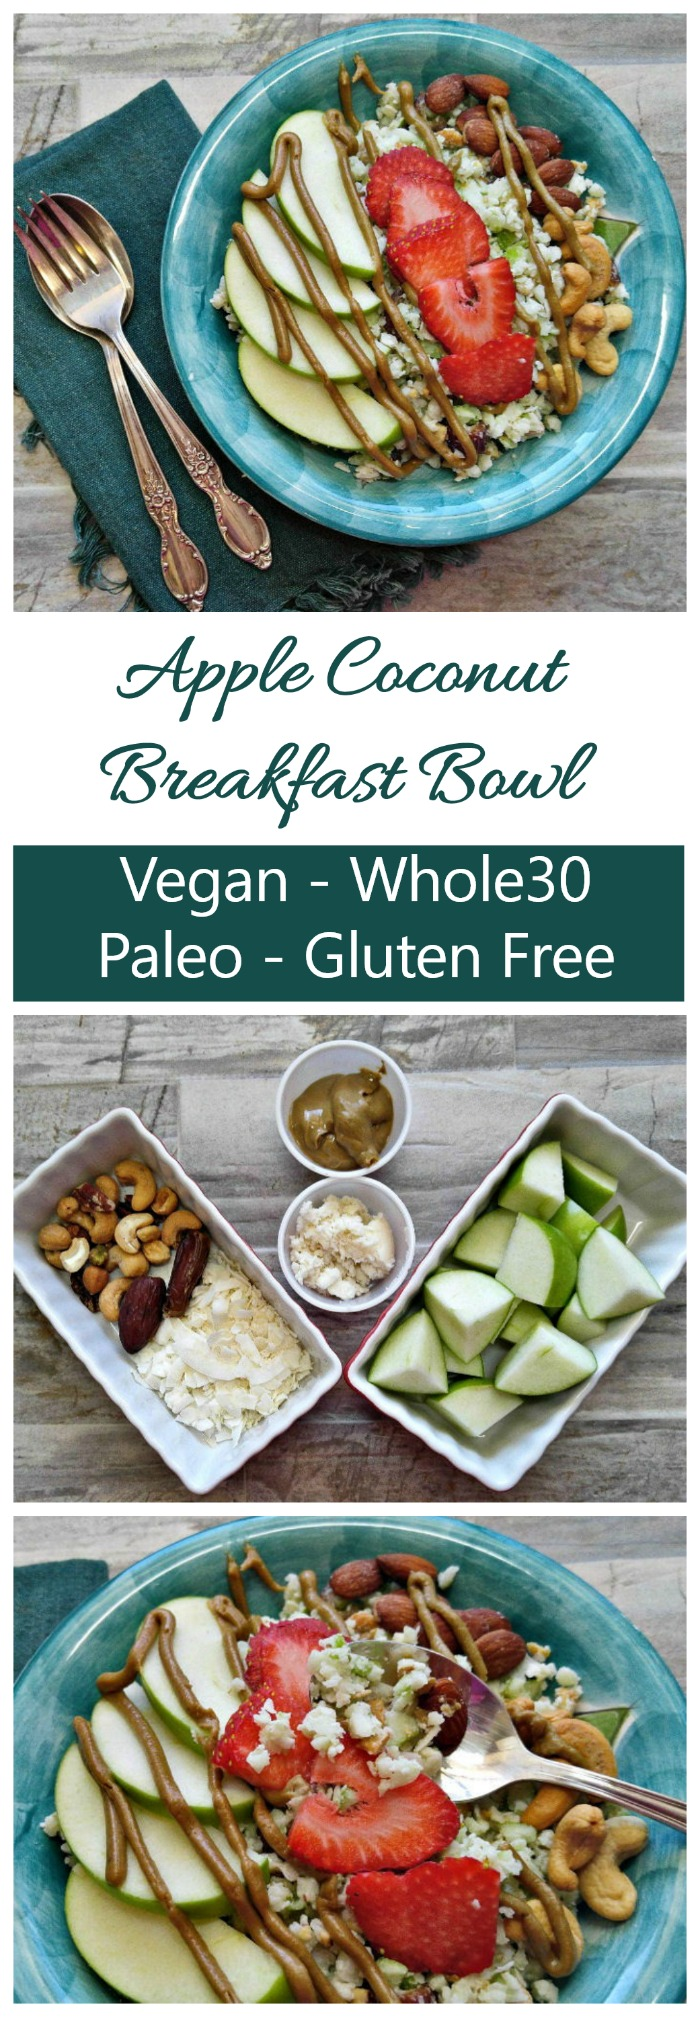 This Whole30 Apple Coconut Breakfast bowl has just a few ingredients and is ready in just minutes. #whole30breakfastbowl #whole30recipes